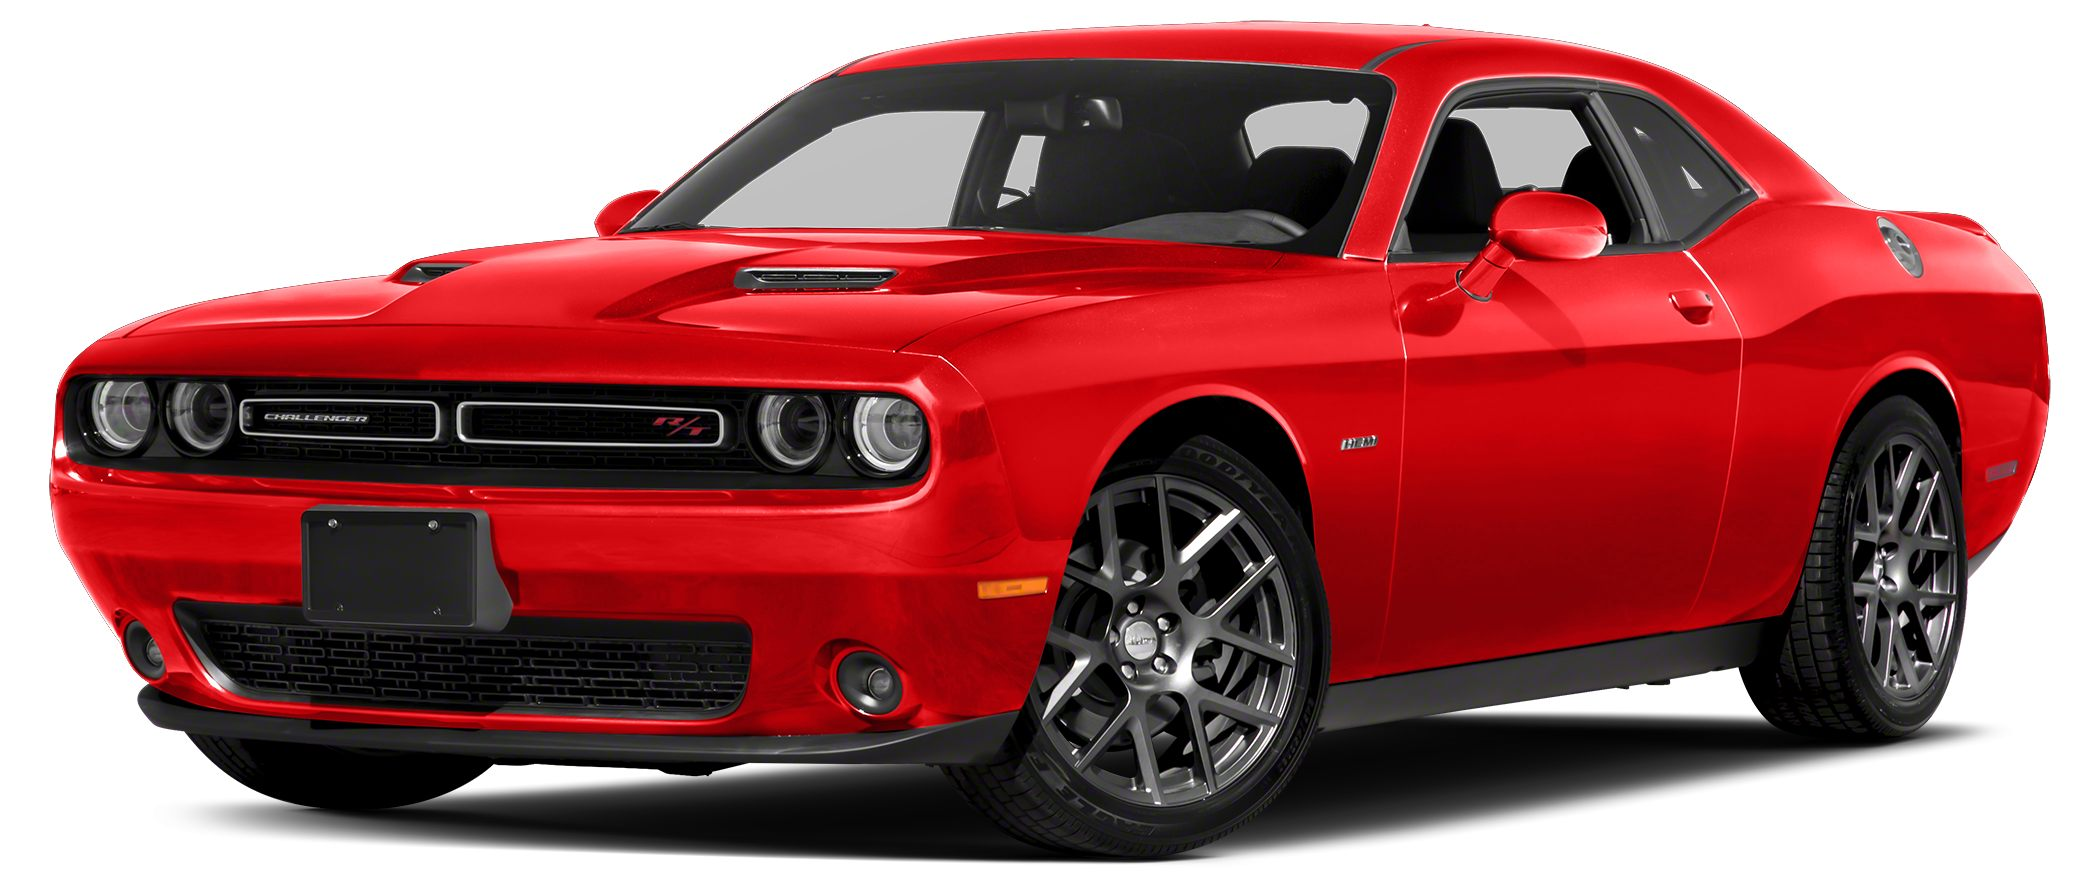 2016 Dodge Challenger RT SPECIAL ONLINE PRICE INCLUDES 4000 IN DEALER CASH THAT ALL CUSTOMERS Q